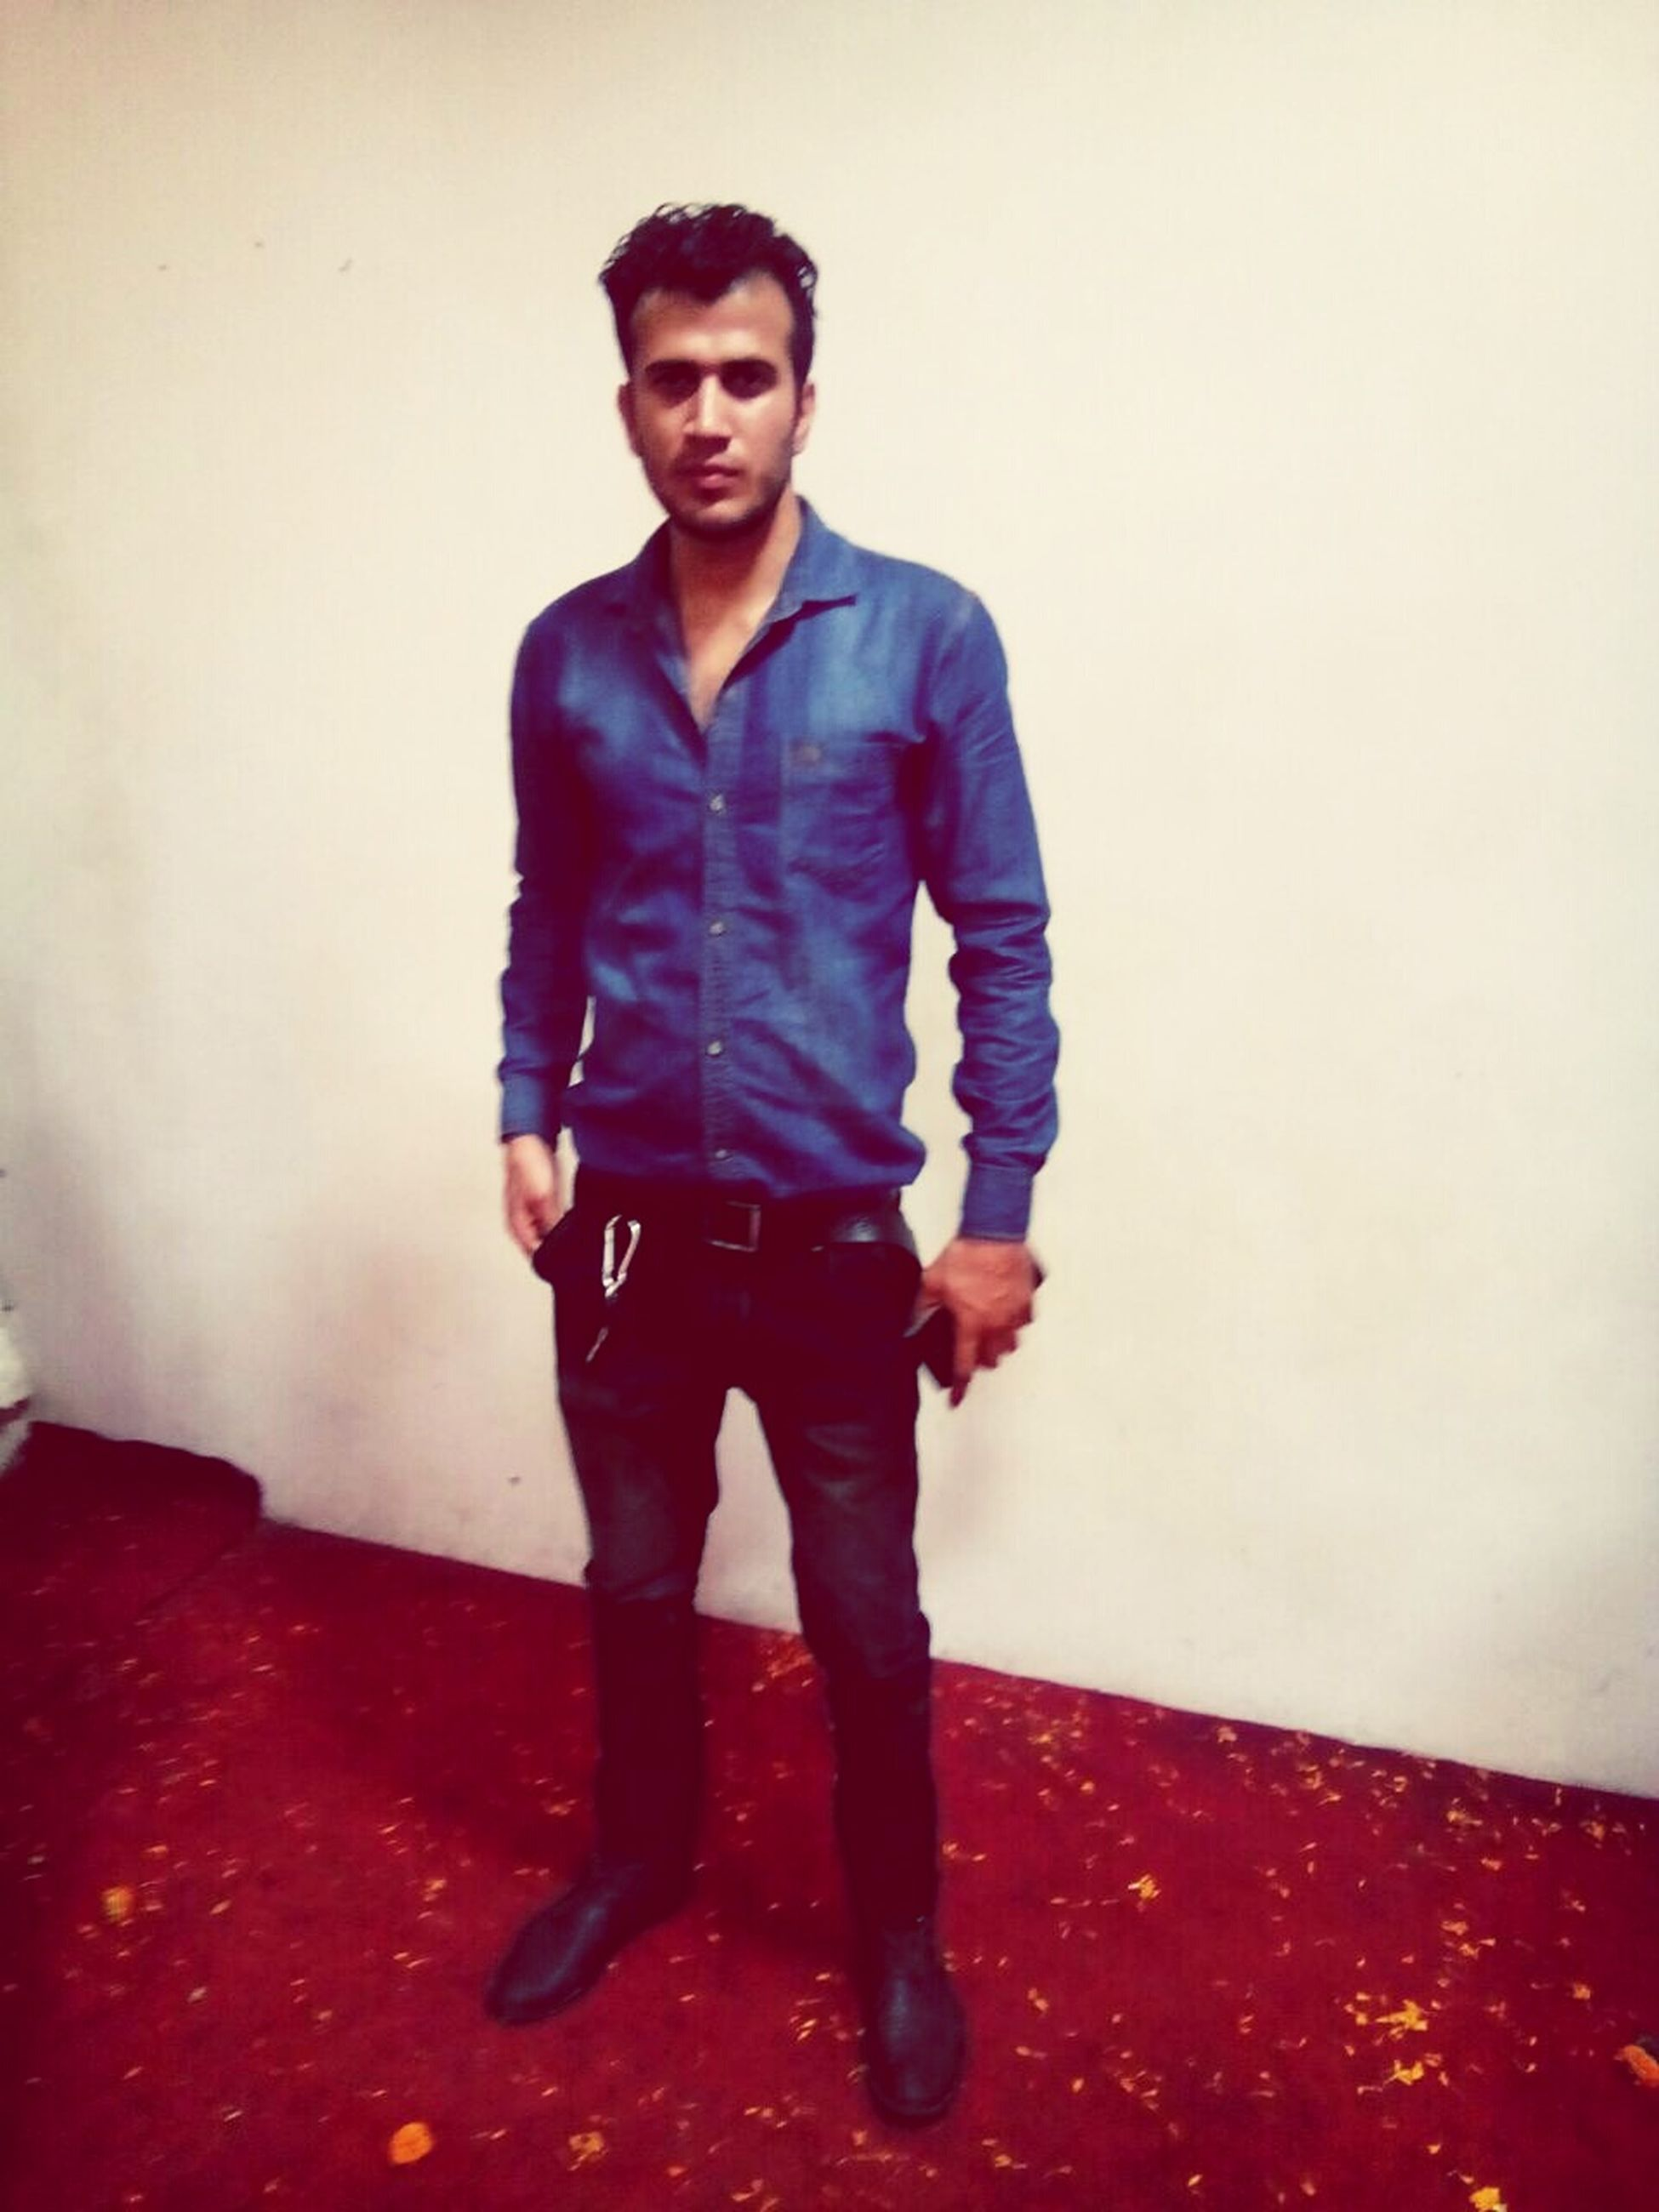 casual clothing, looking at camera, front view, portrait, standing, lifestyles, person, full length, young adult, wall - building feature, young men, leisure activity, three quarter length, copy space, smiling, indoors, happiness